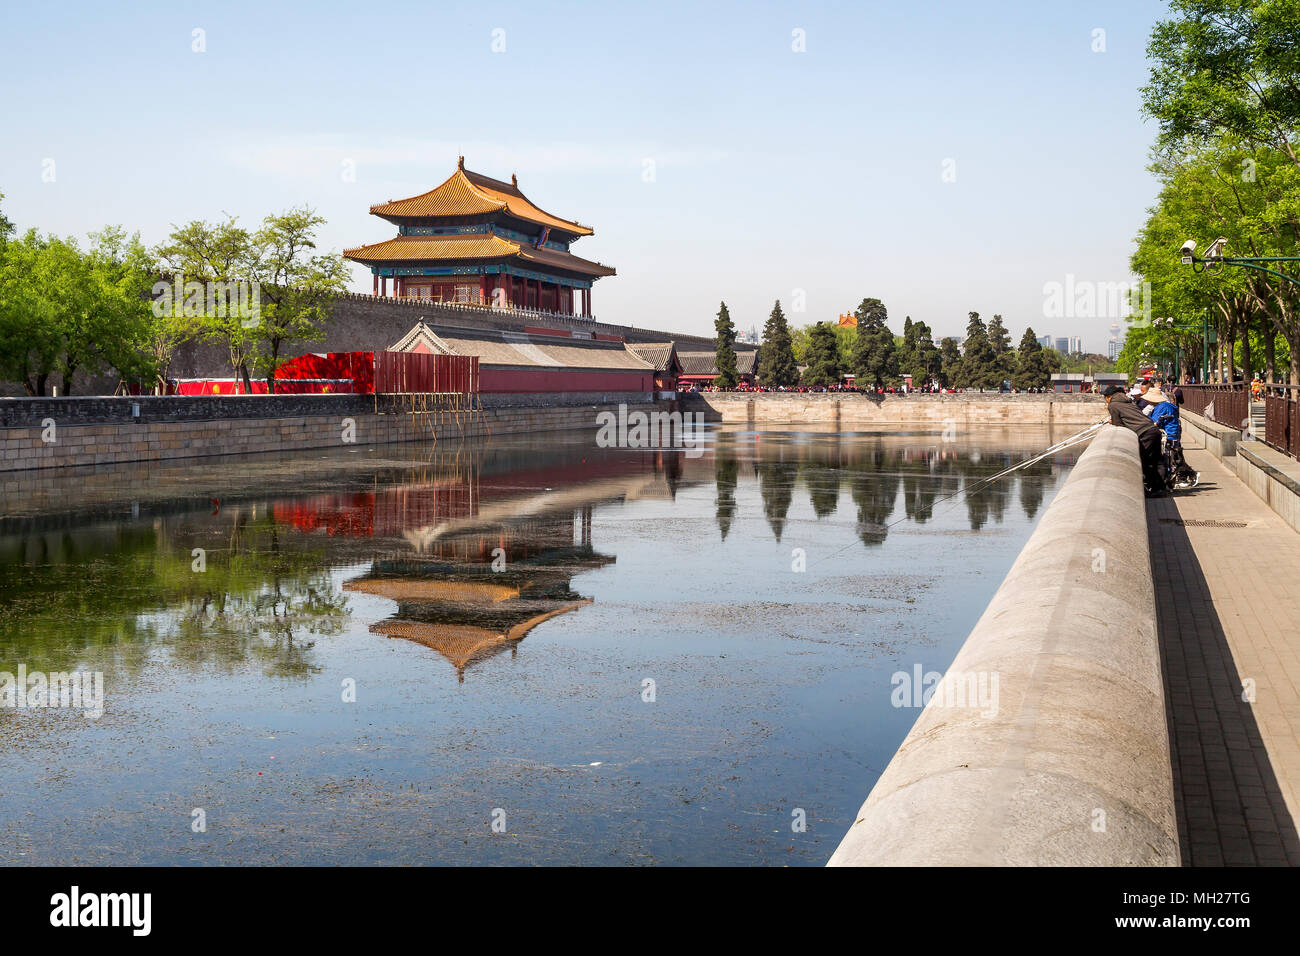 A group of friends catching fish in the moat surrounding the Forbidden City, Beijing, China. In the distance the Northern gate and crowds of tourists. Stock Photo